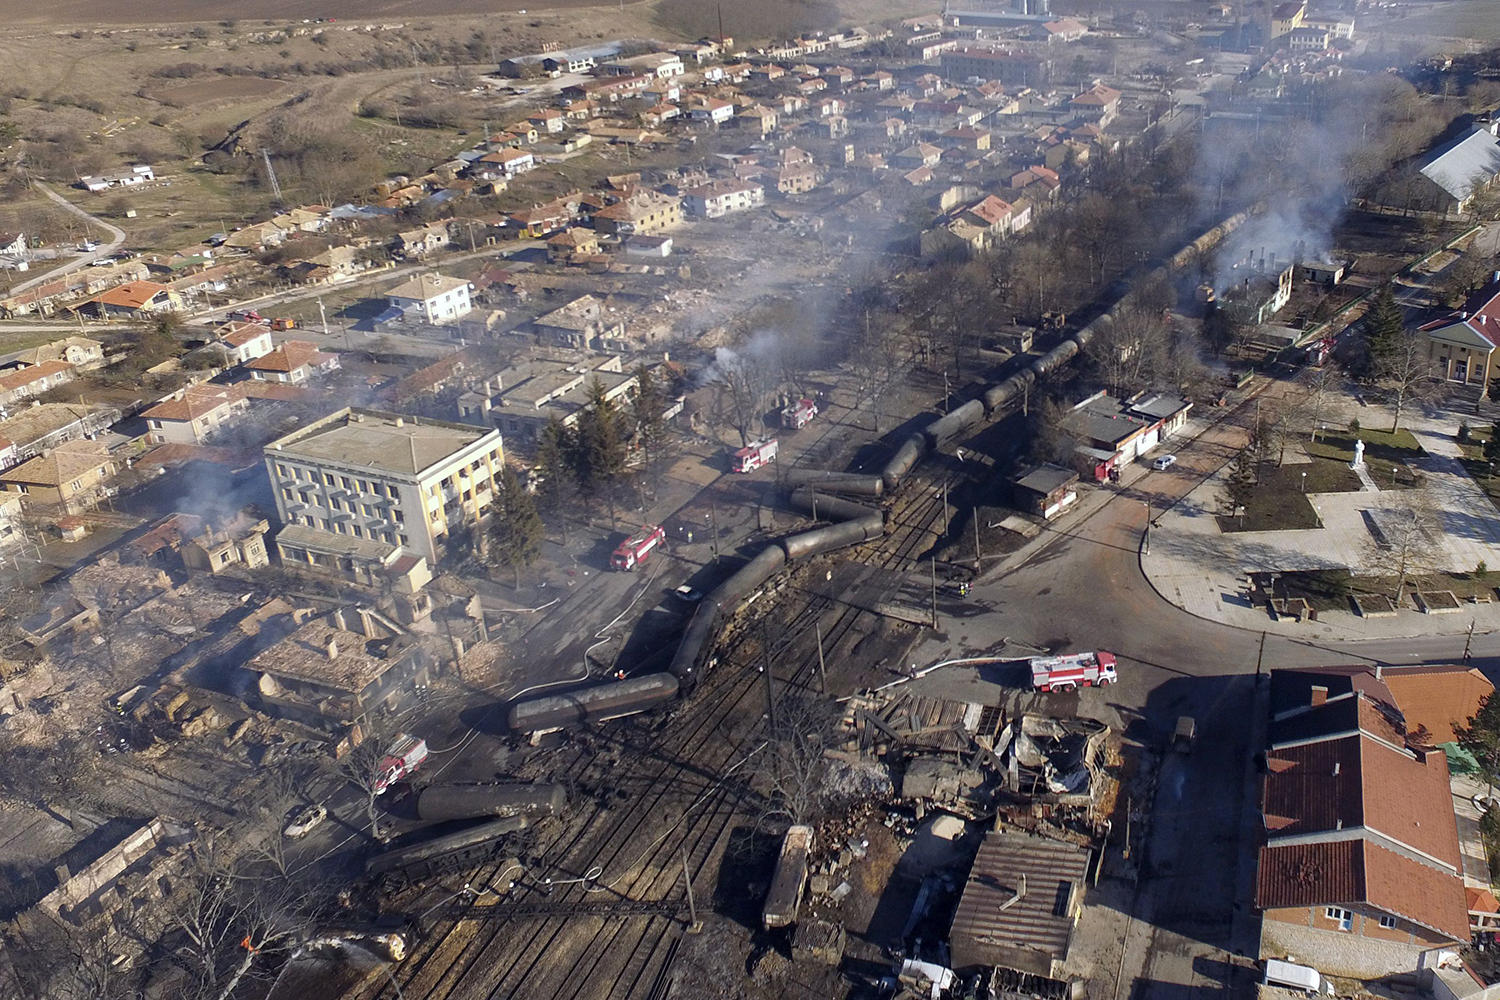 TOPSHOT - An aerial view shows the wreckage of a train transporting gas after it derailed and exploded in the northeastern Bulgarian village of Hitrino on December 10, 2016. At least five people died and 27 were injured in the blast, emergency services said. Around 20 homes were smashed and many of the residents of the village of some 800 people were evacuated. / AFP PHOTO / Boris KOLEV / TT / kod 444